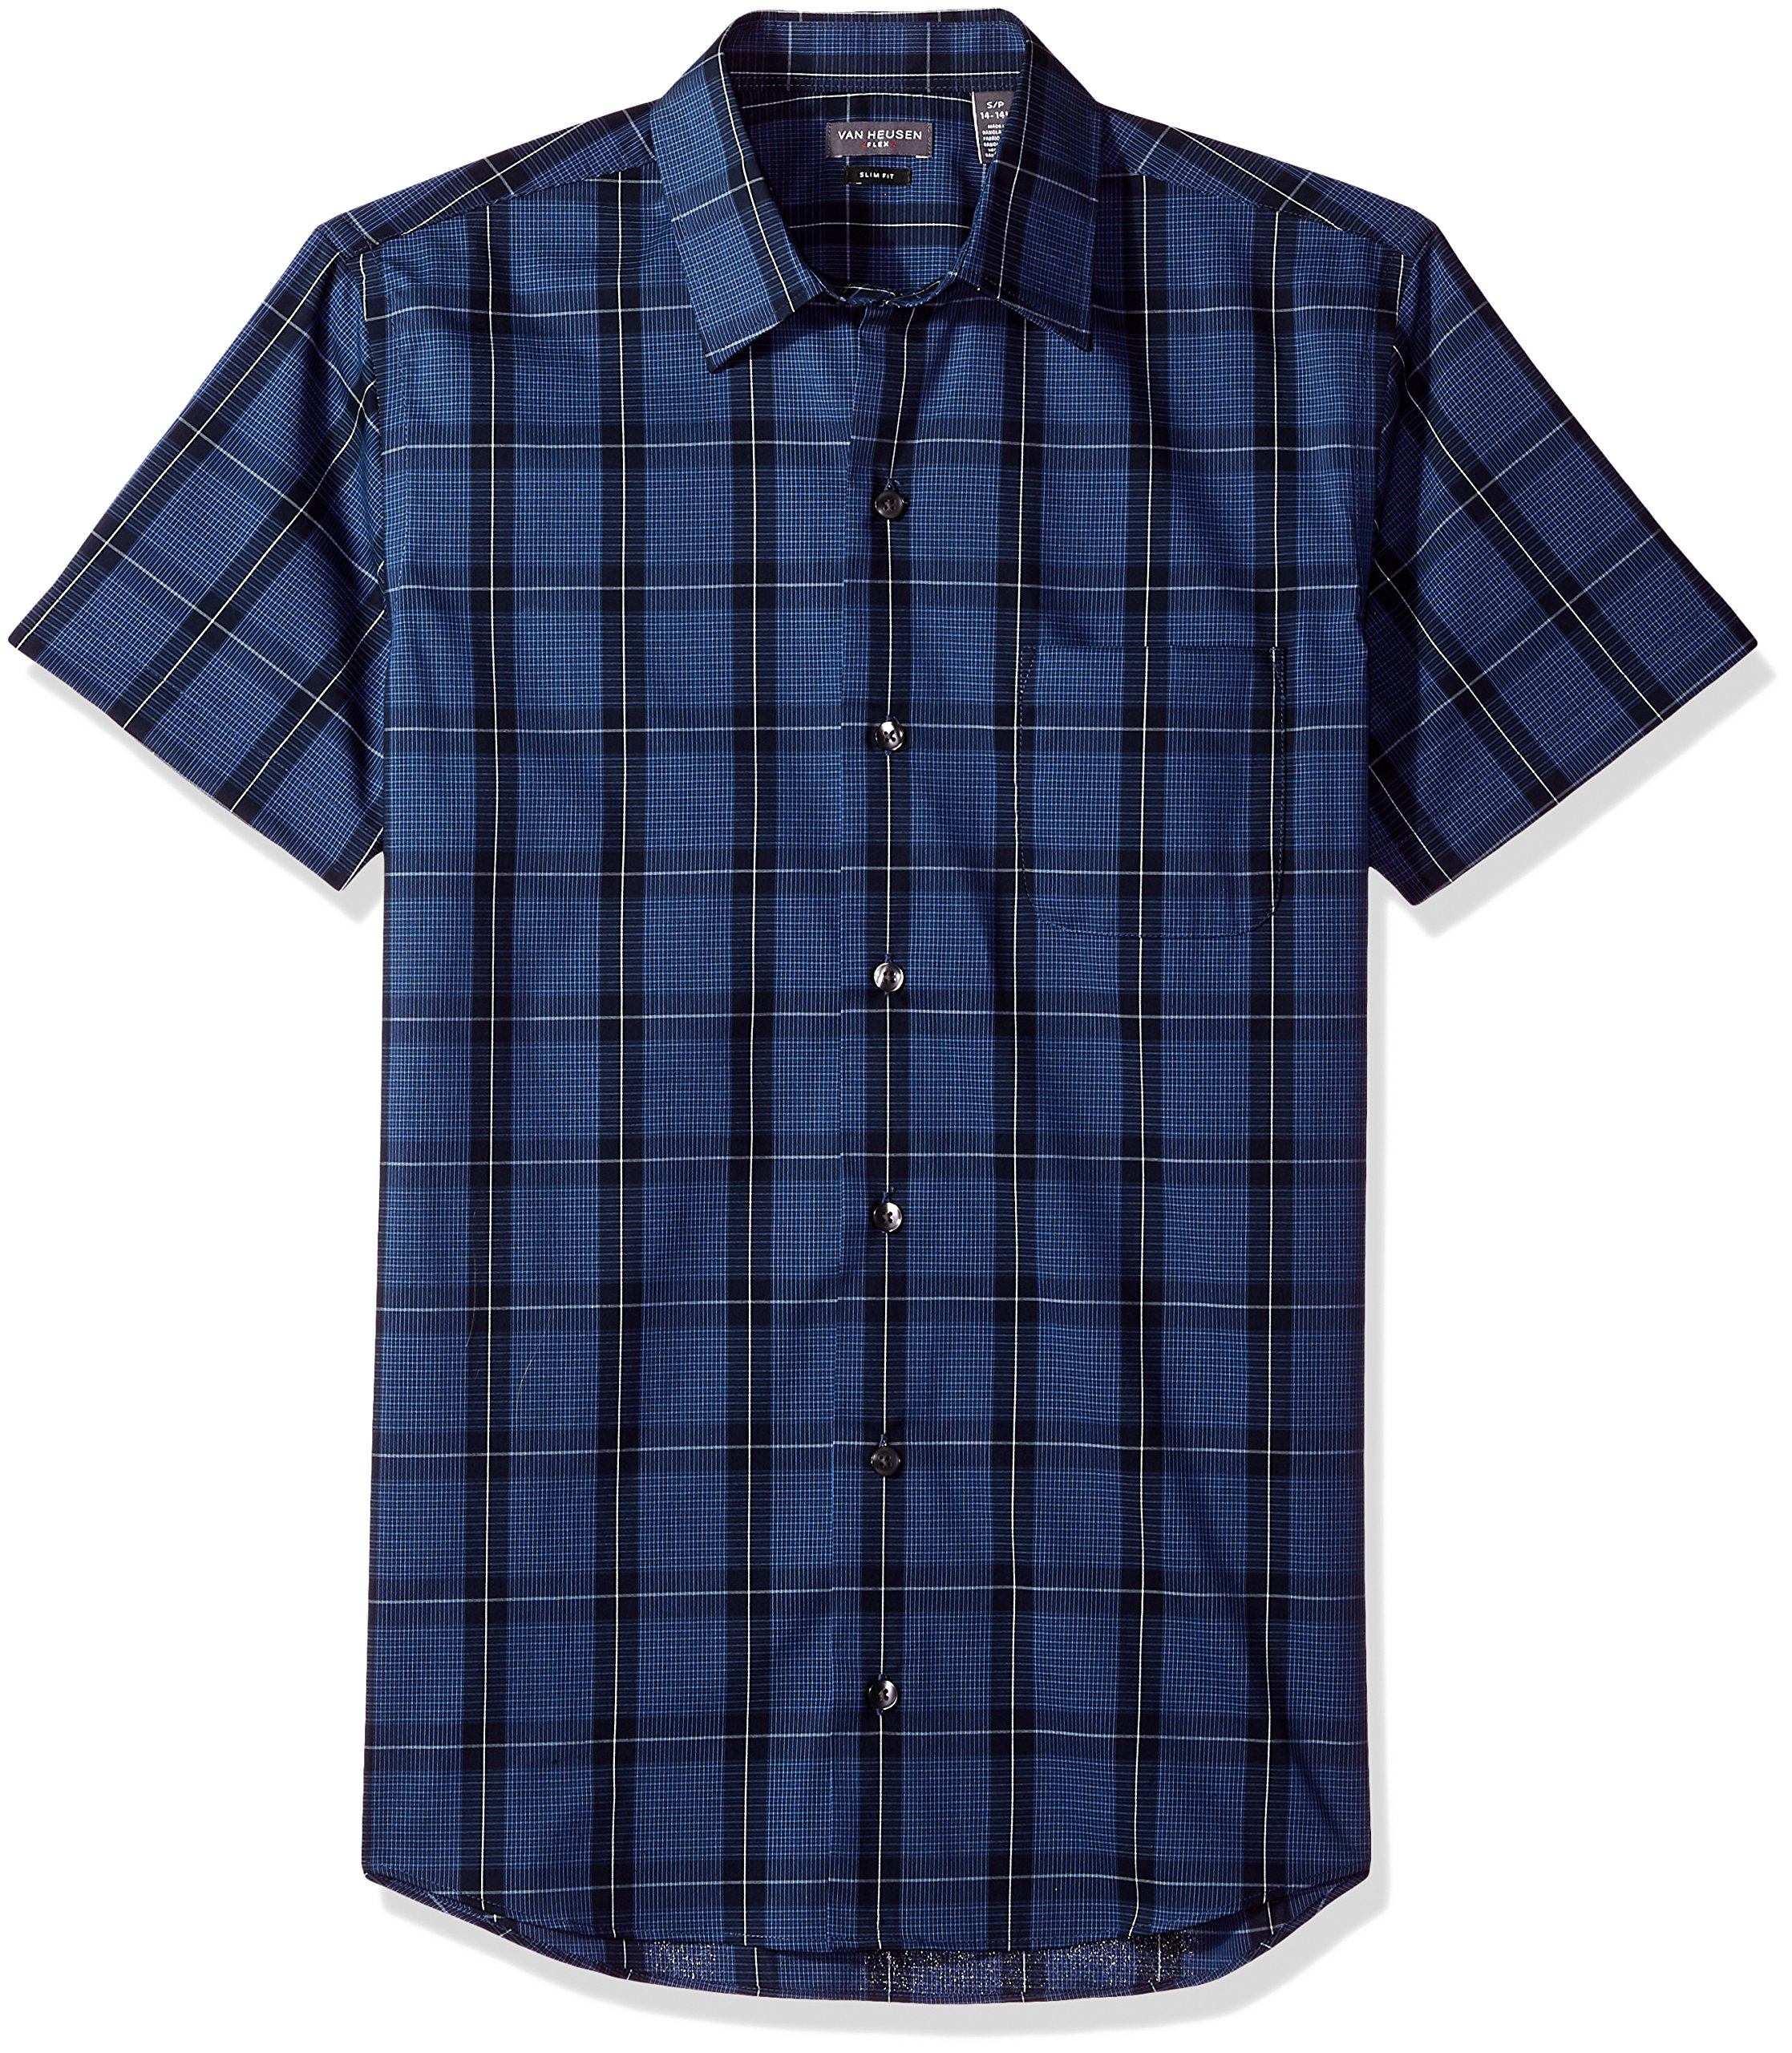 Van Heusen Men's Flex Stretch Short Sleeve Non Iron Shirt, Windowpane Blue Monday, Small Slim